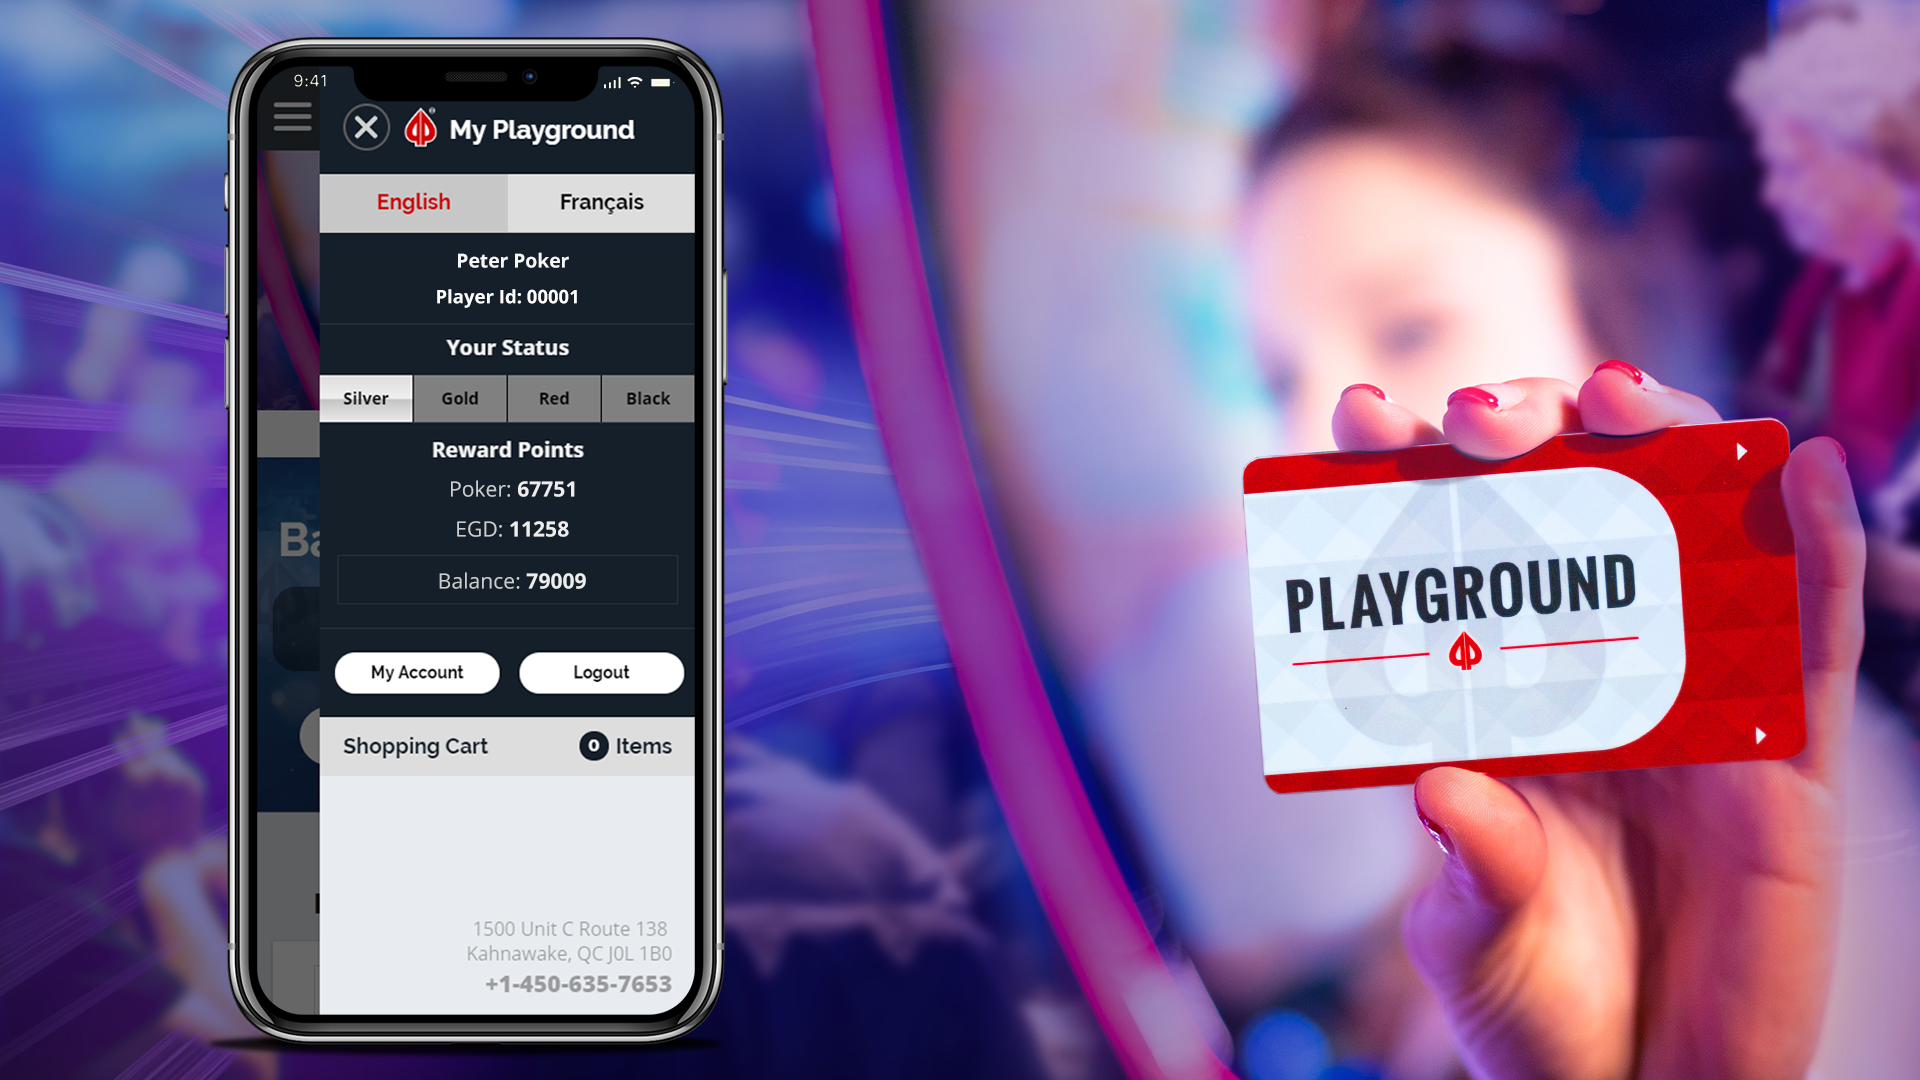 Playground Rewards at Your Fingertips